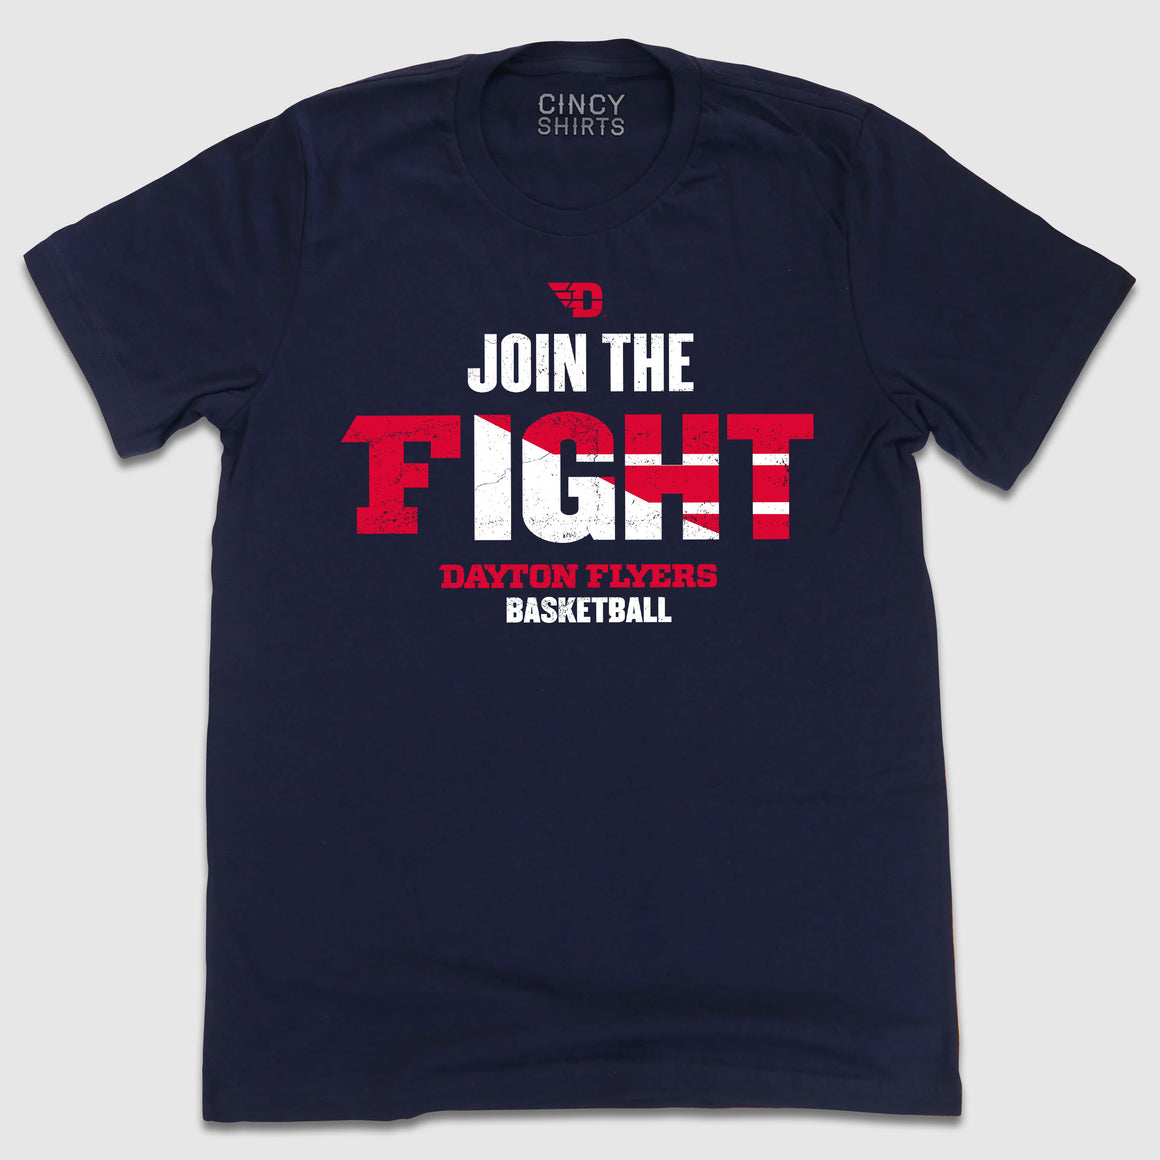 #JointheFight Dayton Flyers Basketball - Cincy Shirts